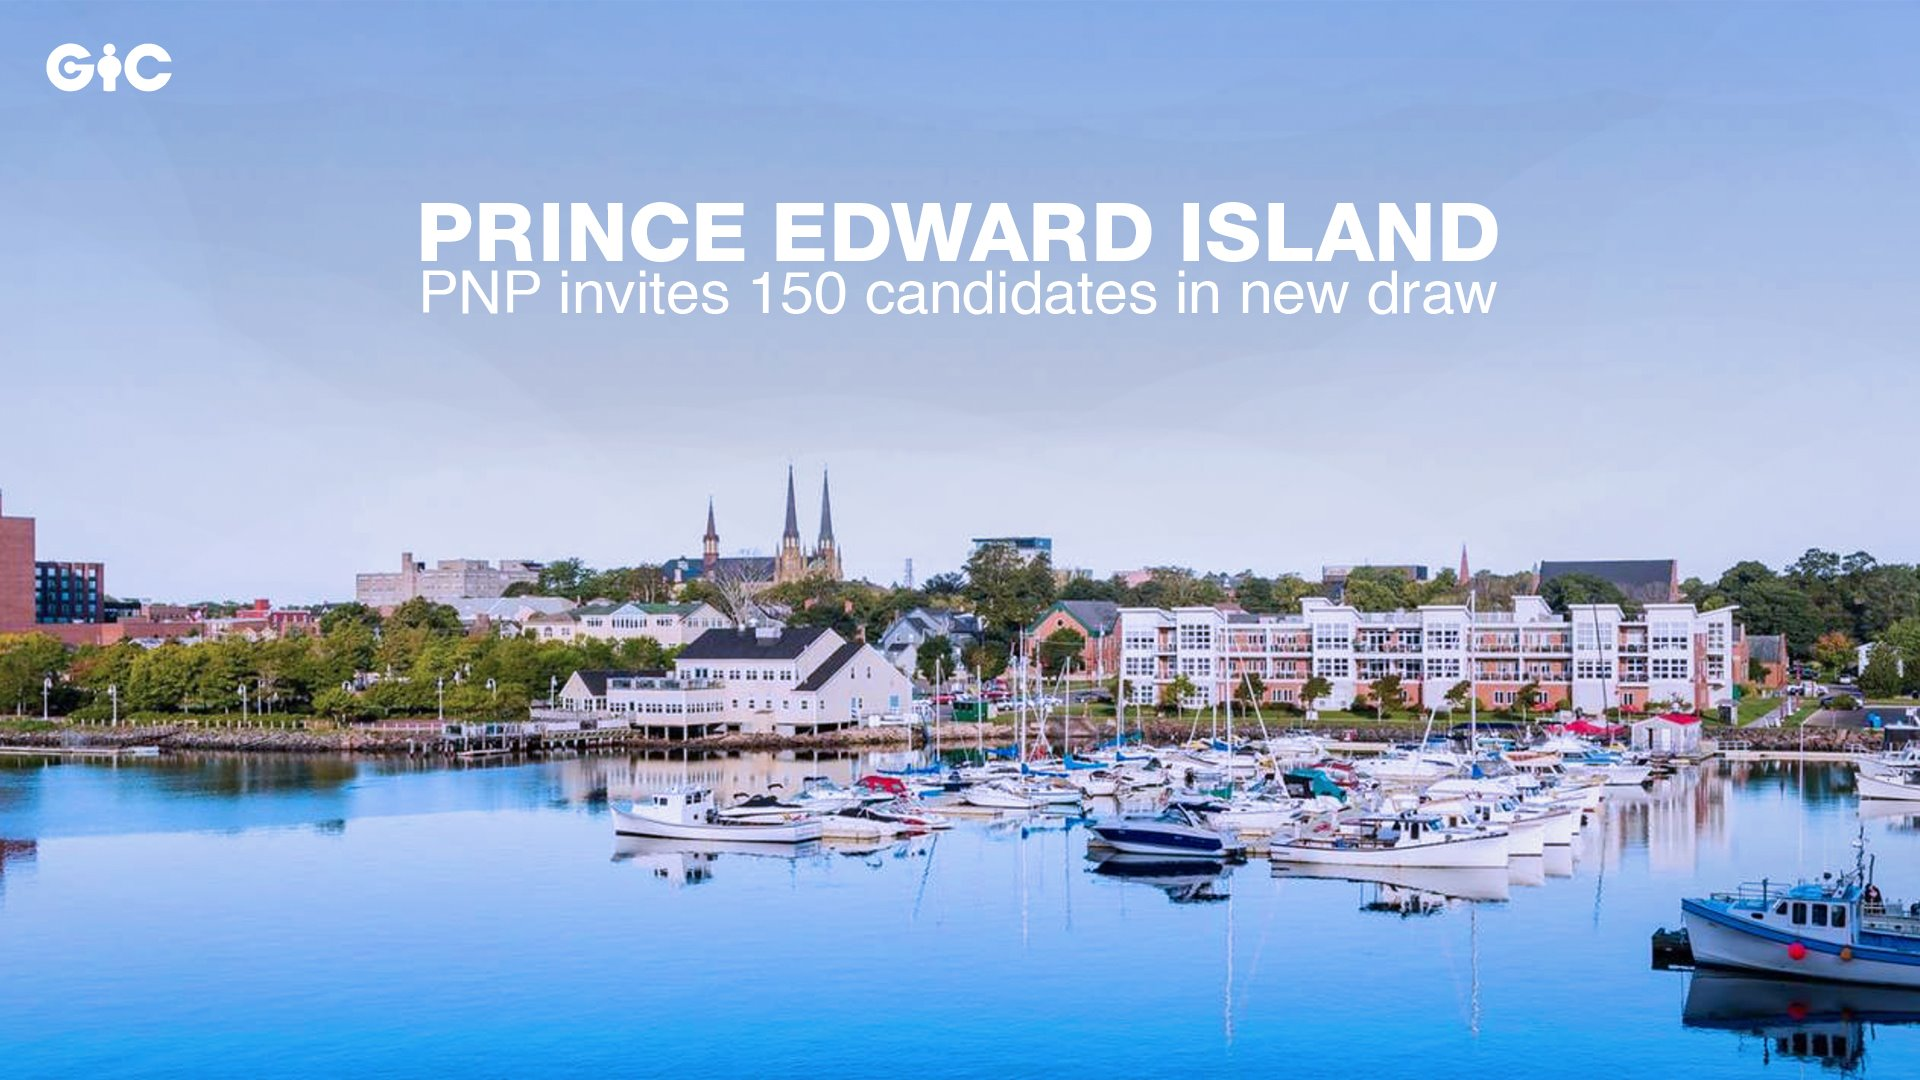 PEI PNP invites 150 candidates in new draw